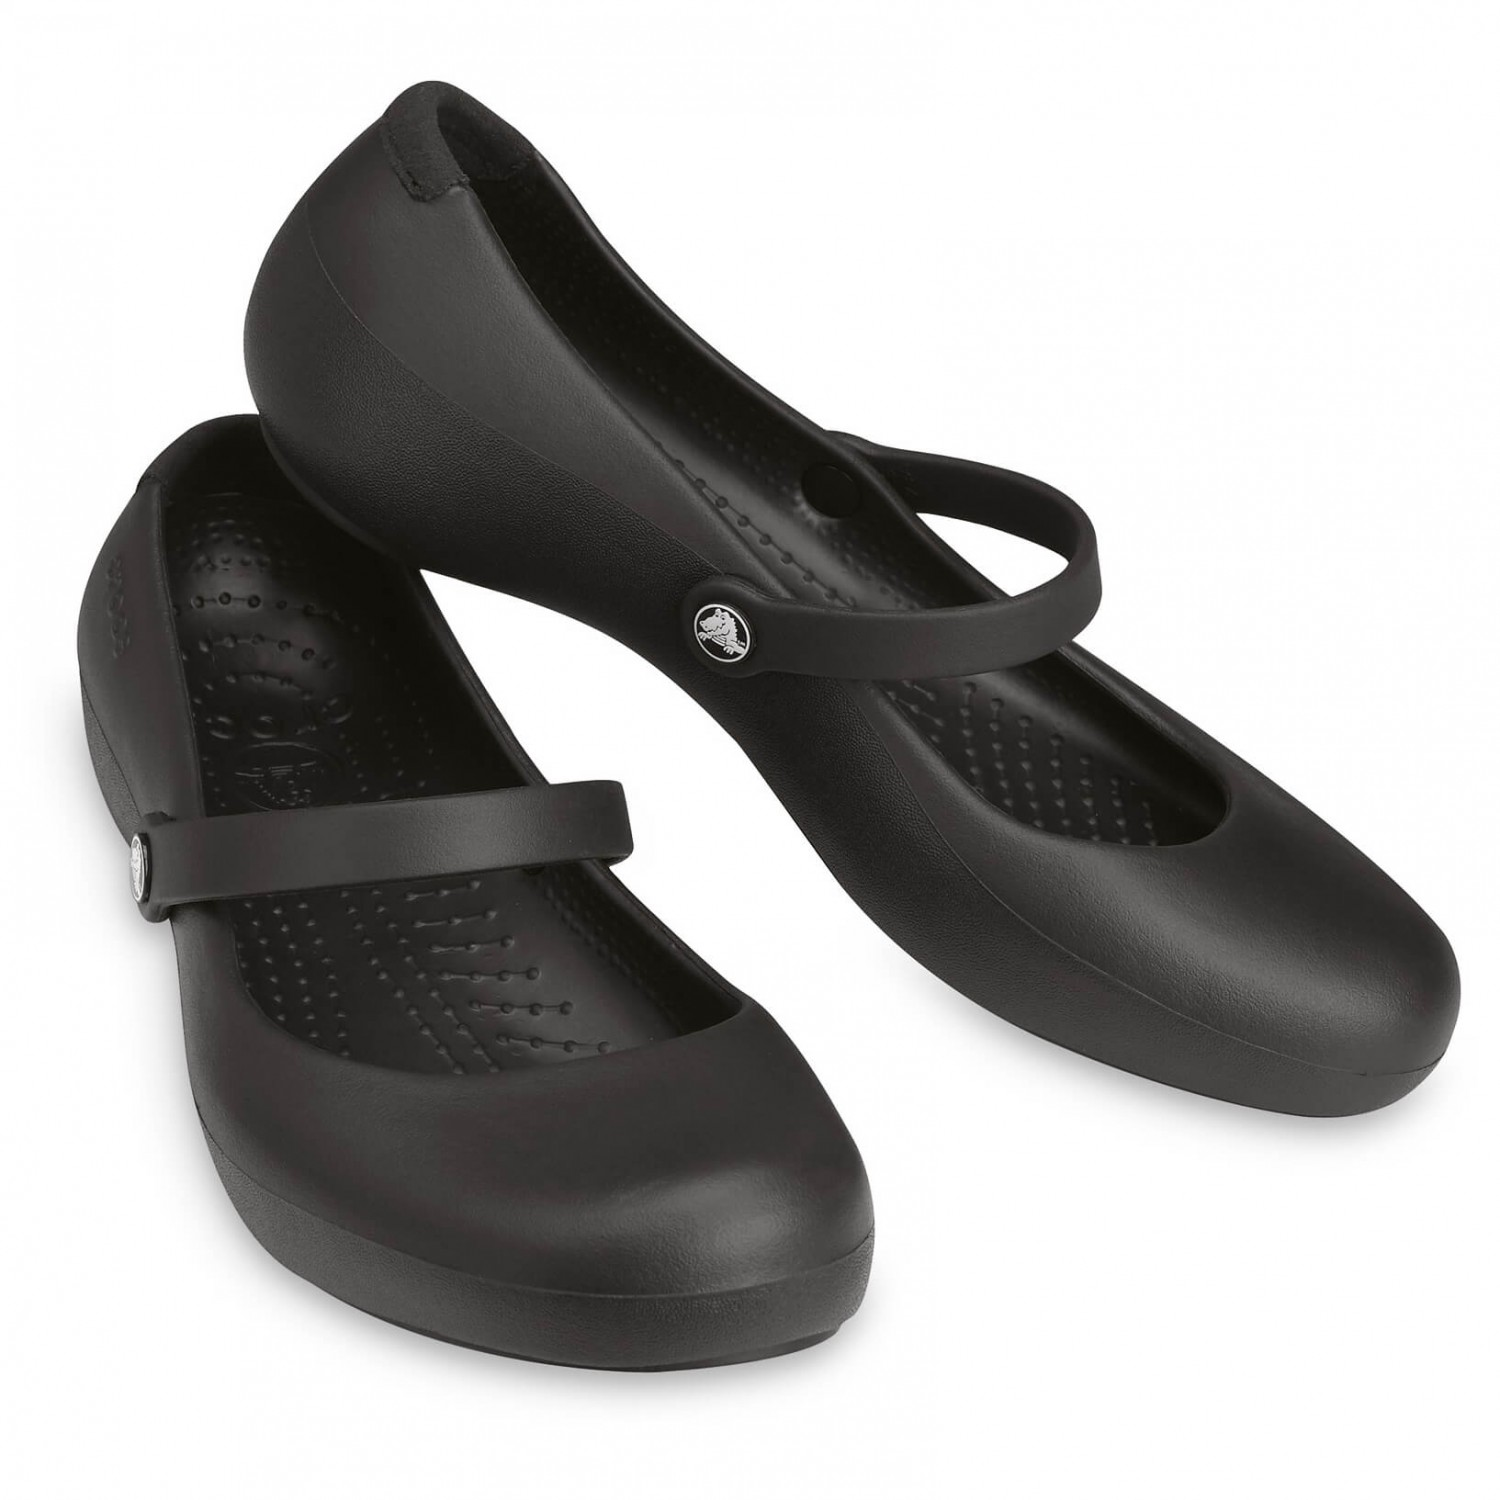 Perfect Crocs Crocs Huarache Flat Espresso / Bronze (UX1) Womens Sandal - Crocs From Pure Brands UK UK